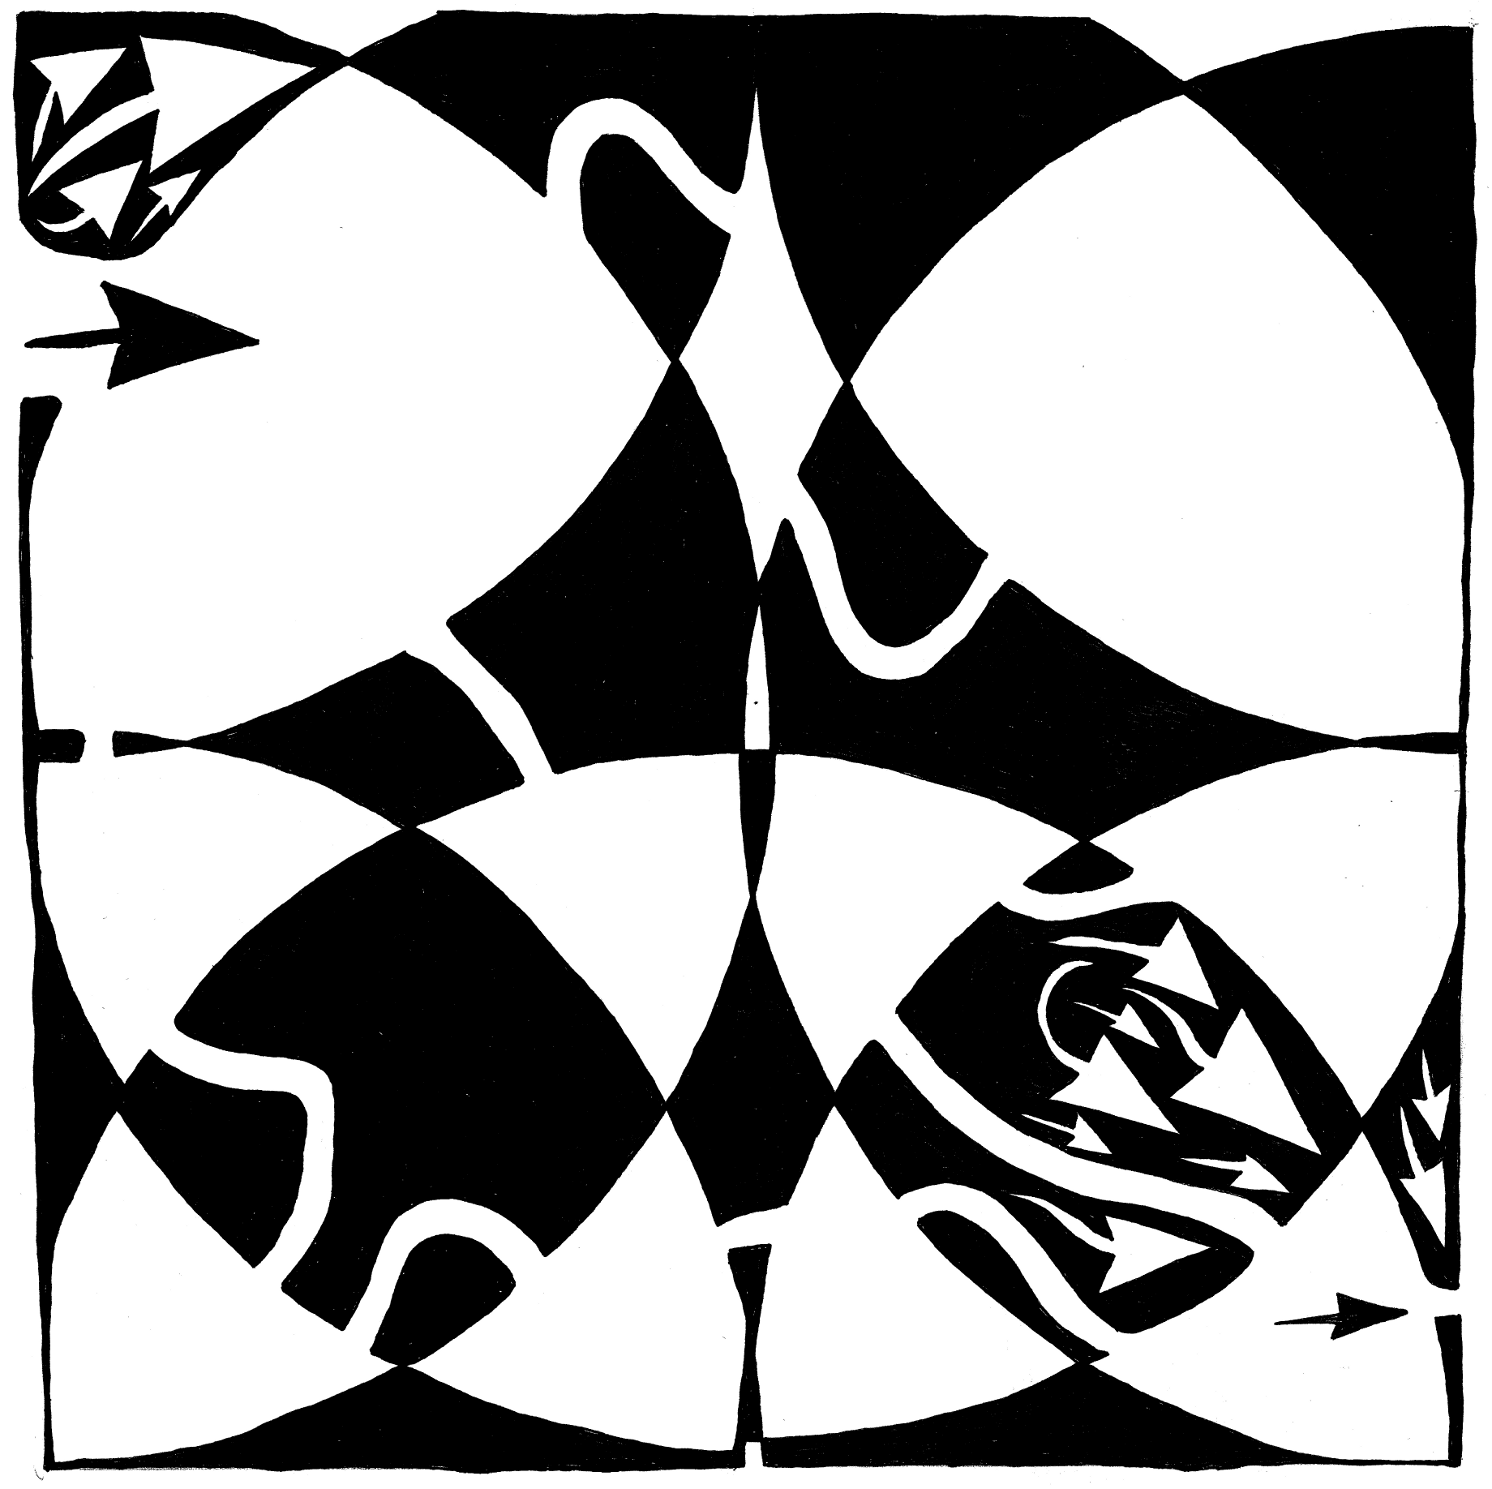 Rorschach maze art by Yonatan Frimer What do you see in this maze?